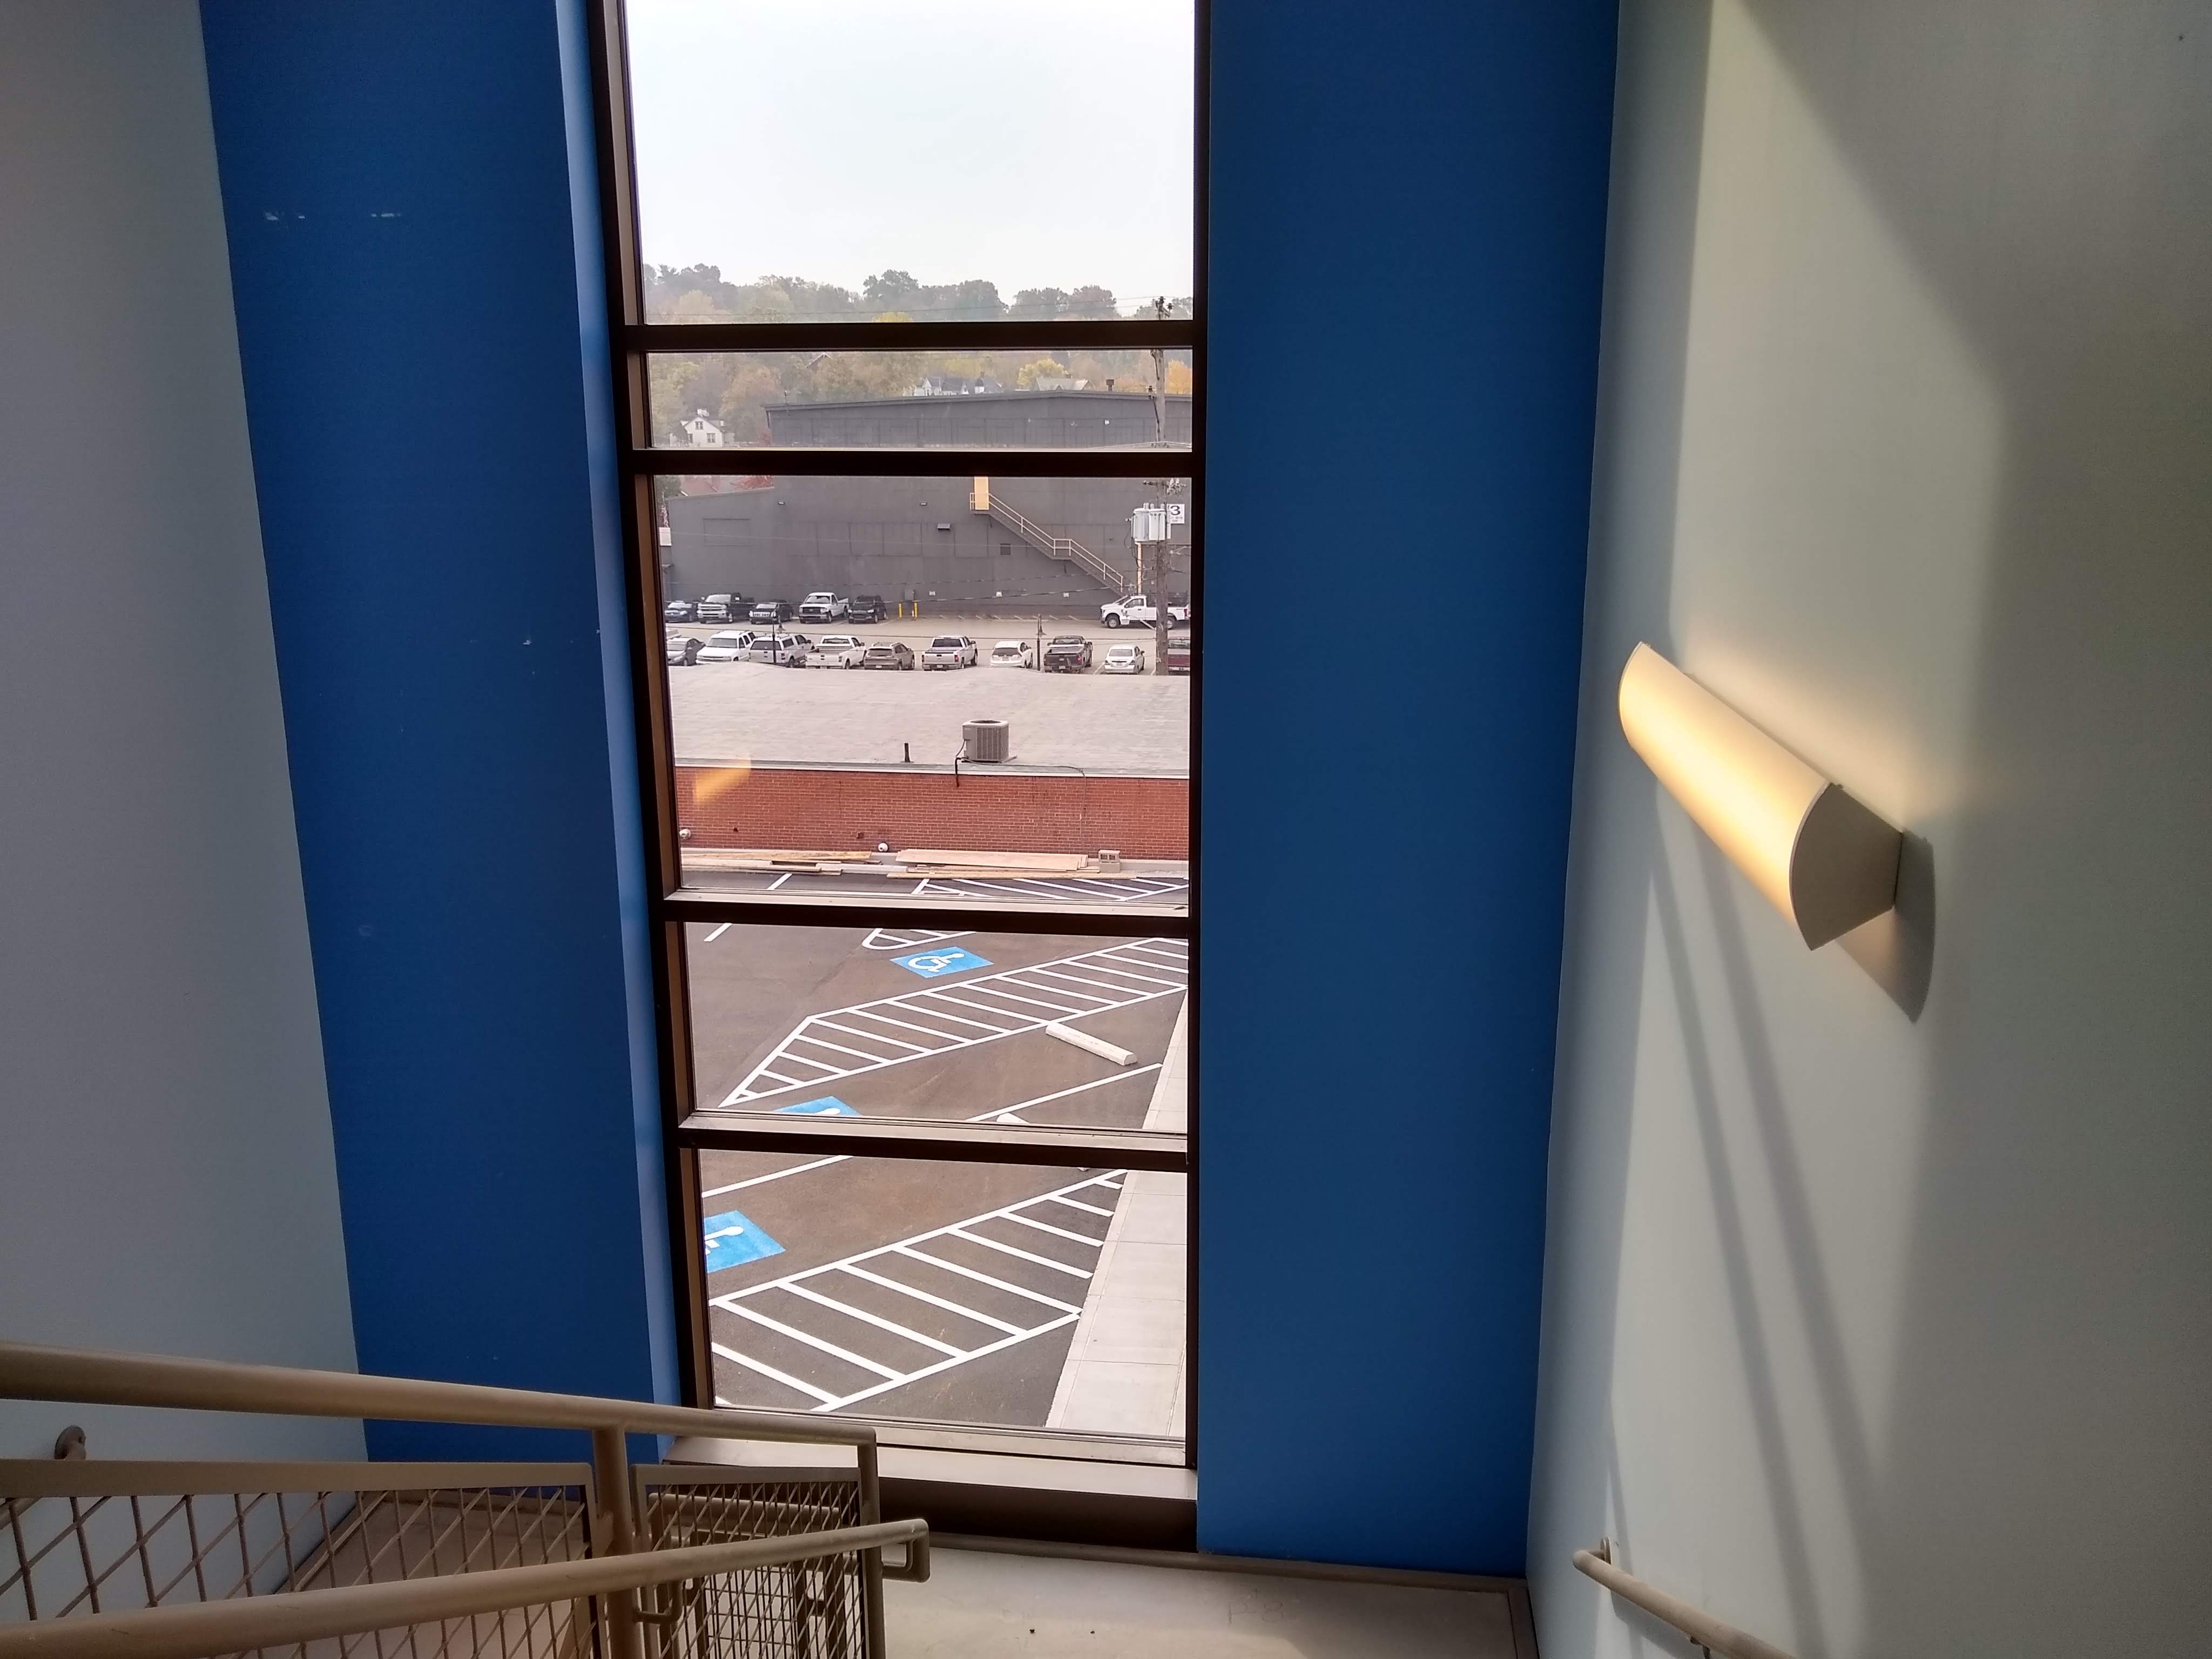 Image of a stair well window looking out into the parking lot